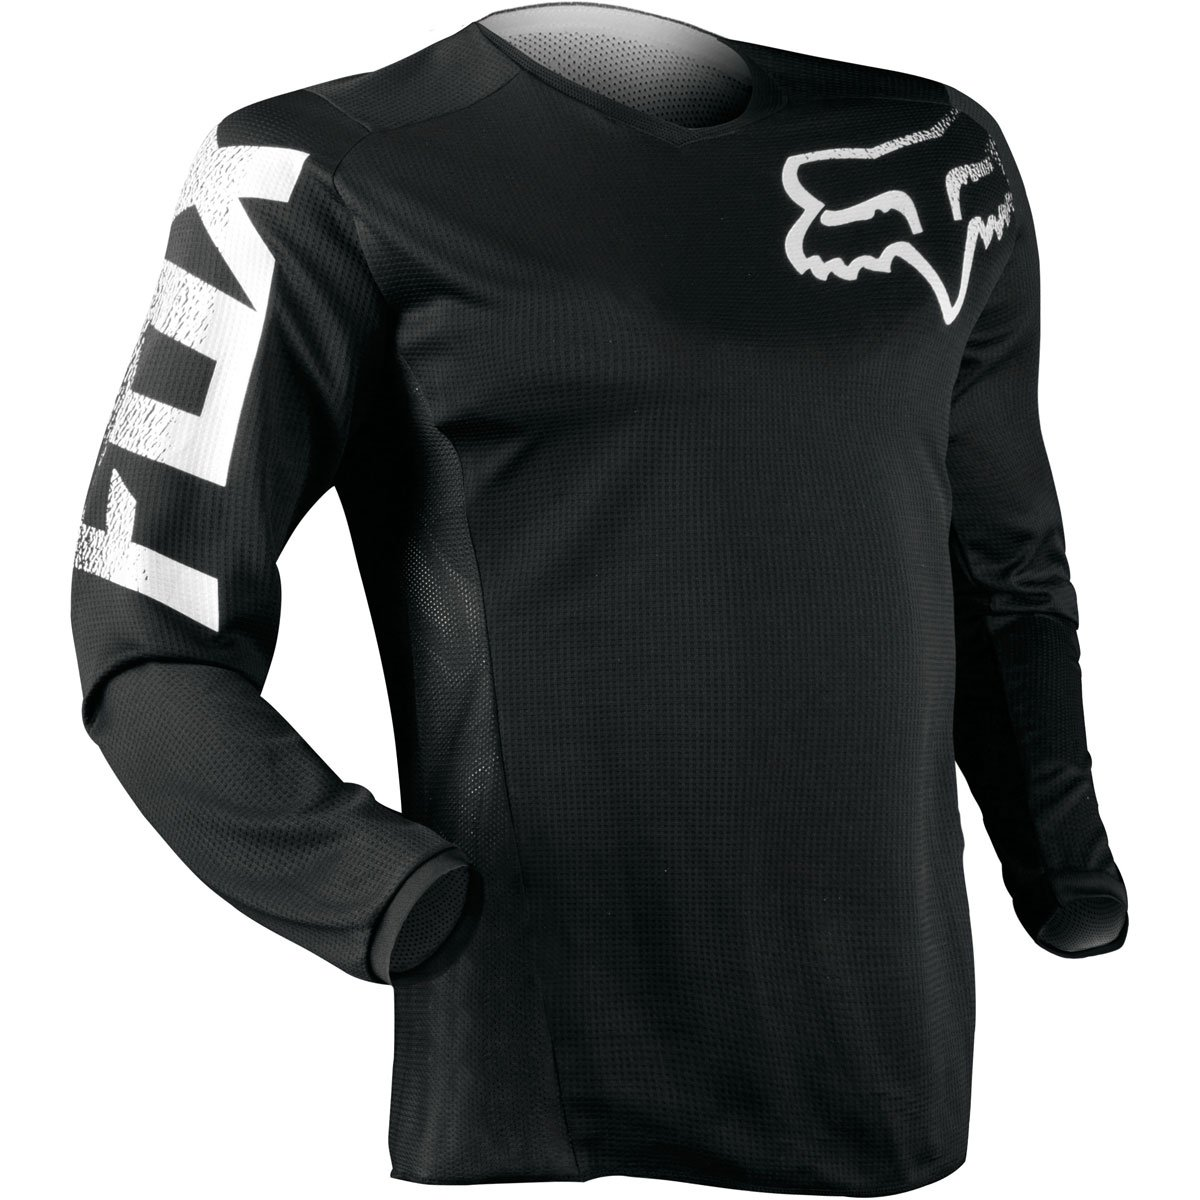 Fox Racing 2019 Youth Blackout Jersey (SMALL) (BLACK) by Fox Racing (Image #3)